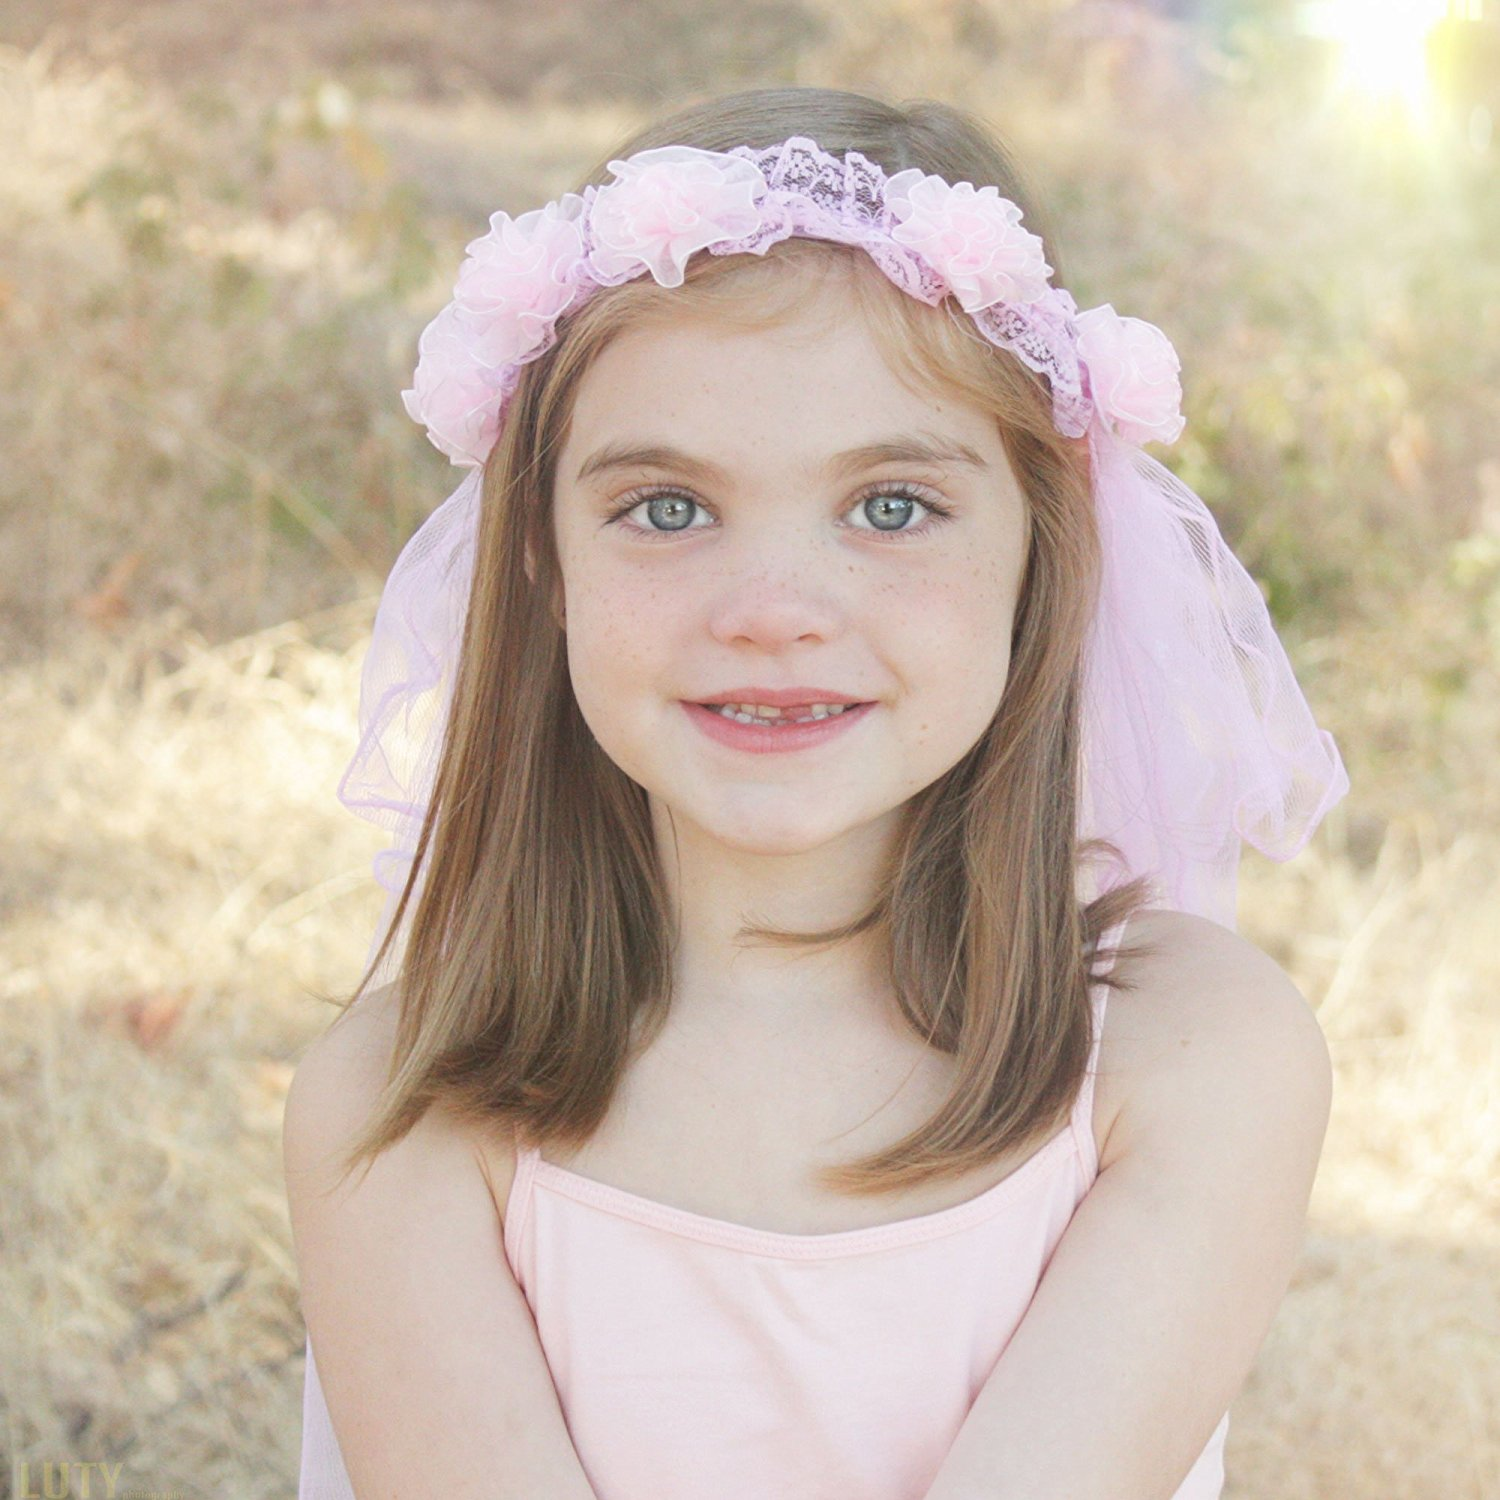 Cheap flower crown veil find flower crown veil deals on line at get quotations princess flower tiara with veil for girls pink hair head band costume for young izmirmasajfo Gallery